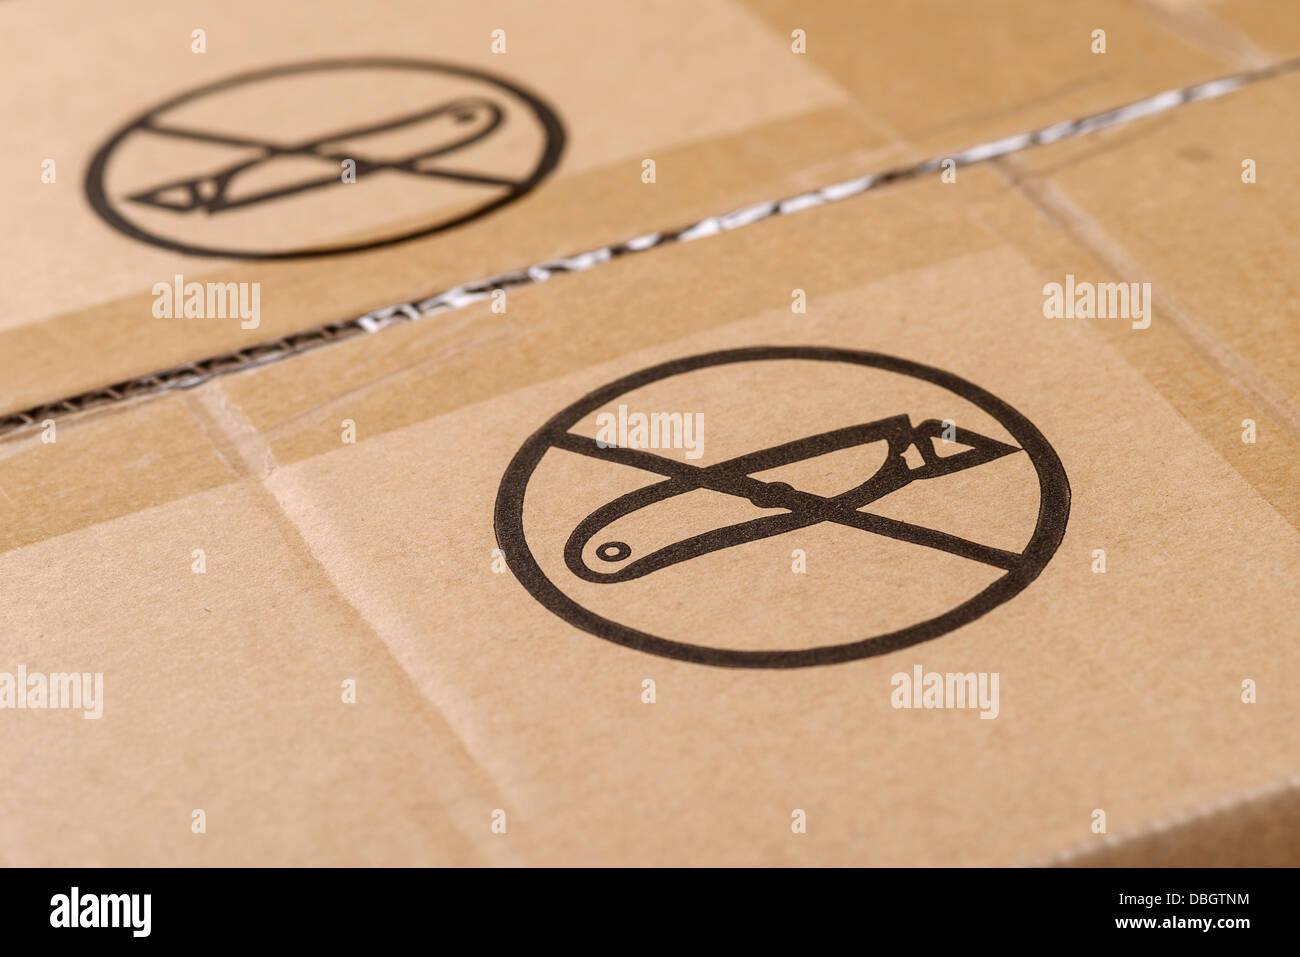 Do not open with a knife sign printed on a cardboard box - Stock Image